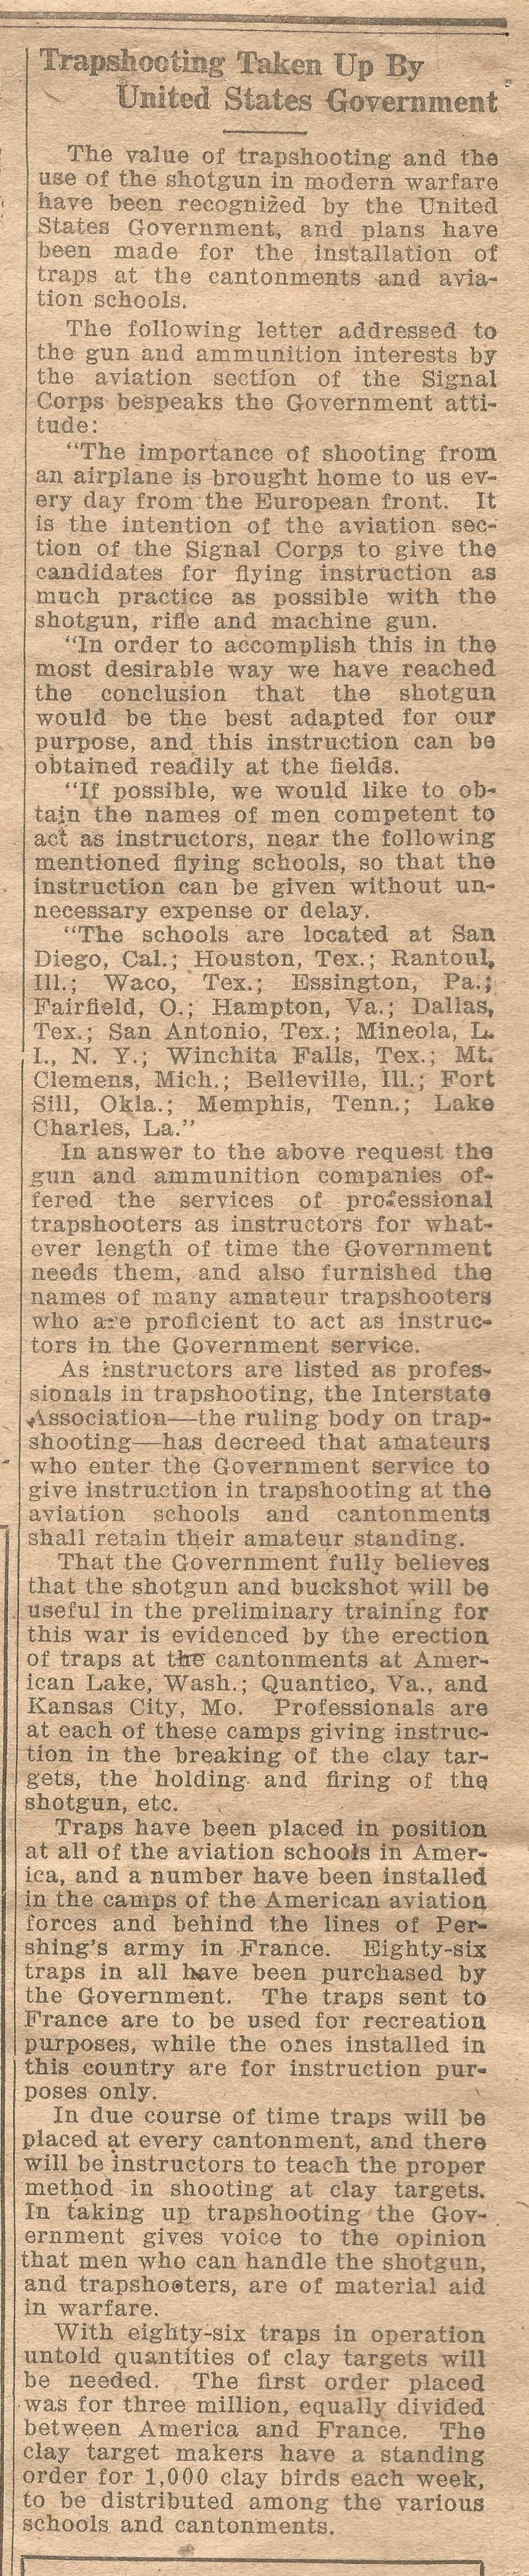 Trench and Camp Newspaper July 14 1918 Page 8